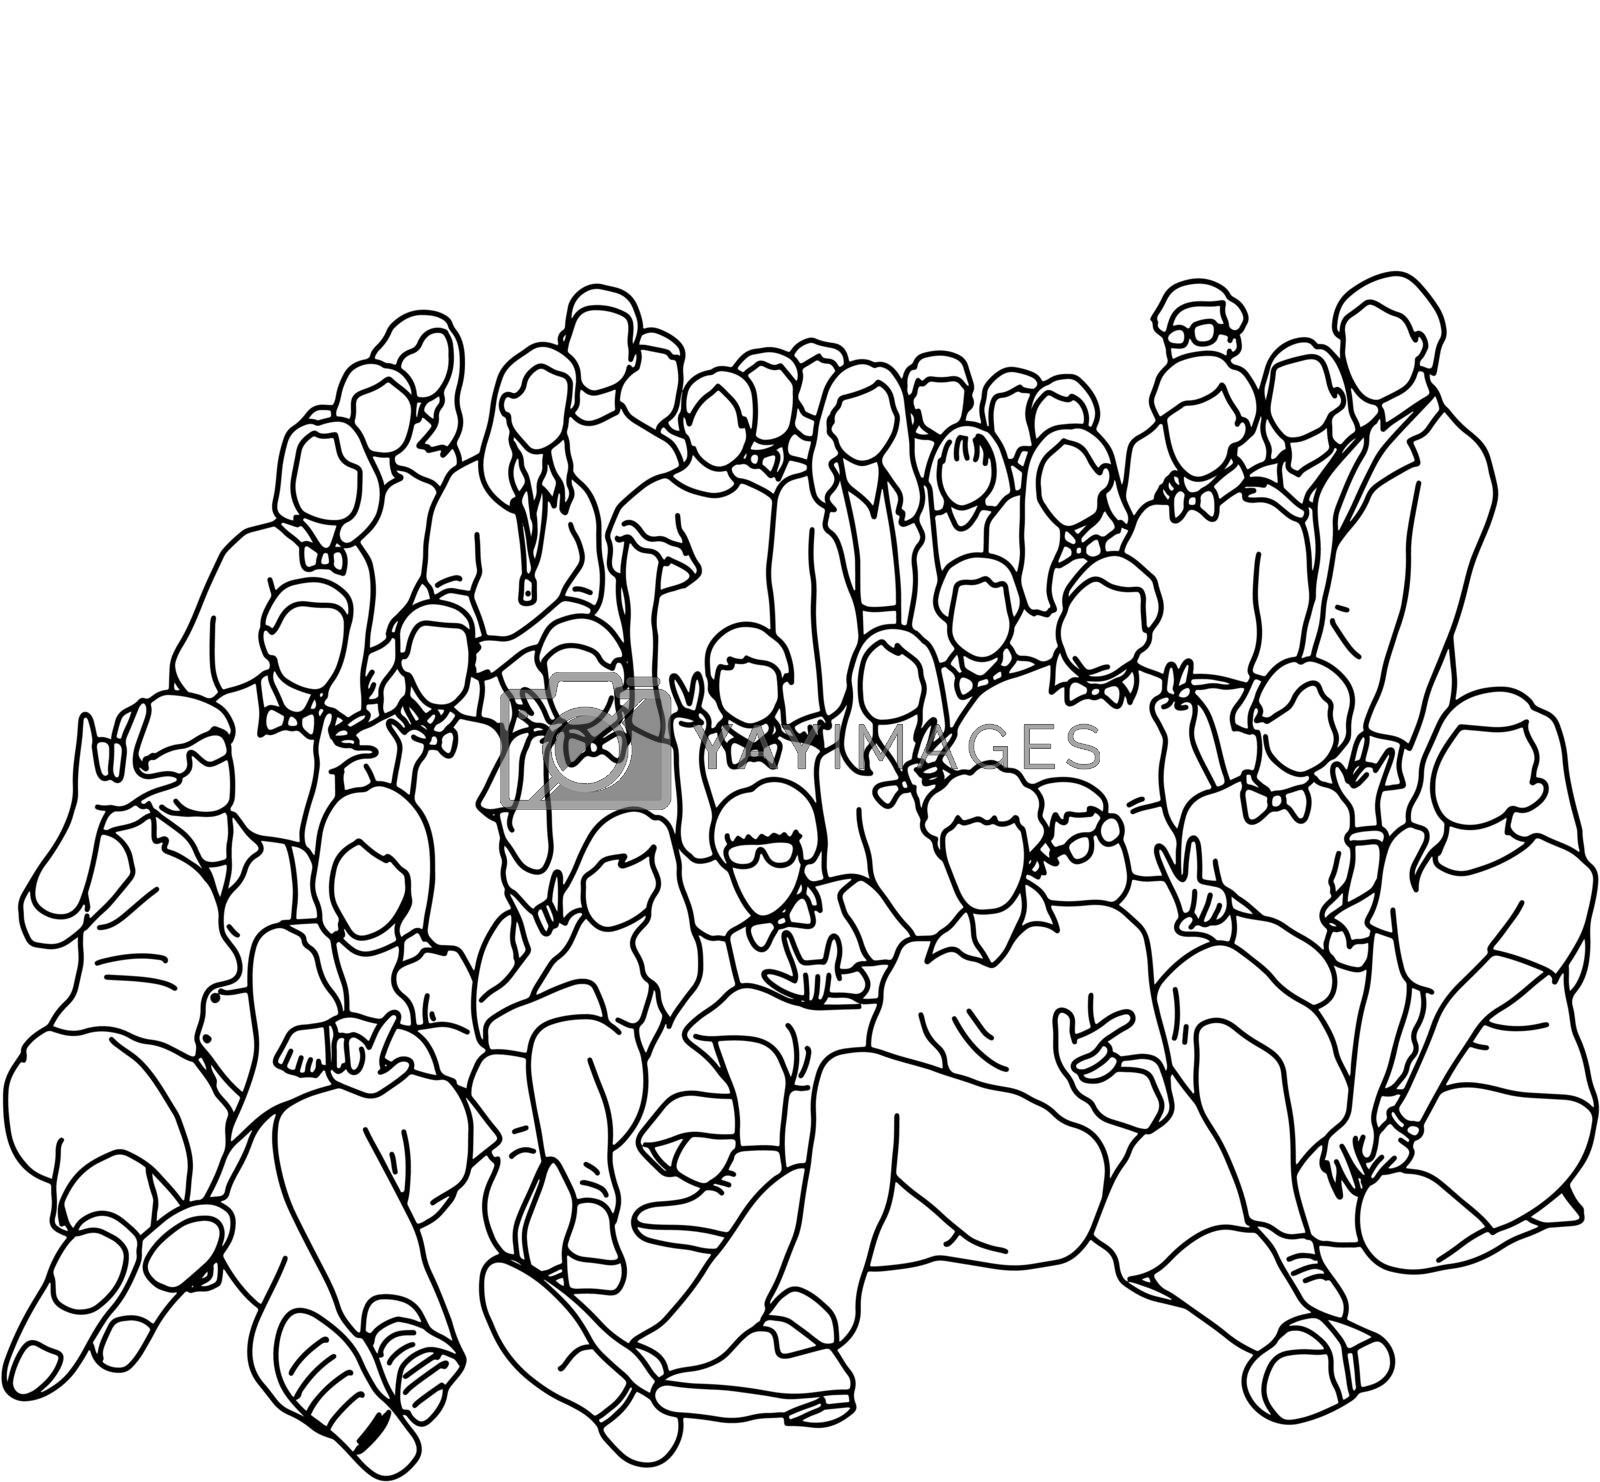 group of people or workers taking photo together vector illustration sketch doodle hand drawn with black lines isolated on white background